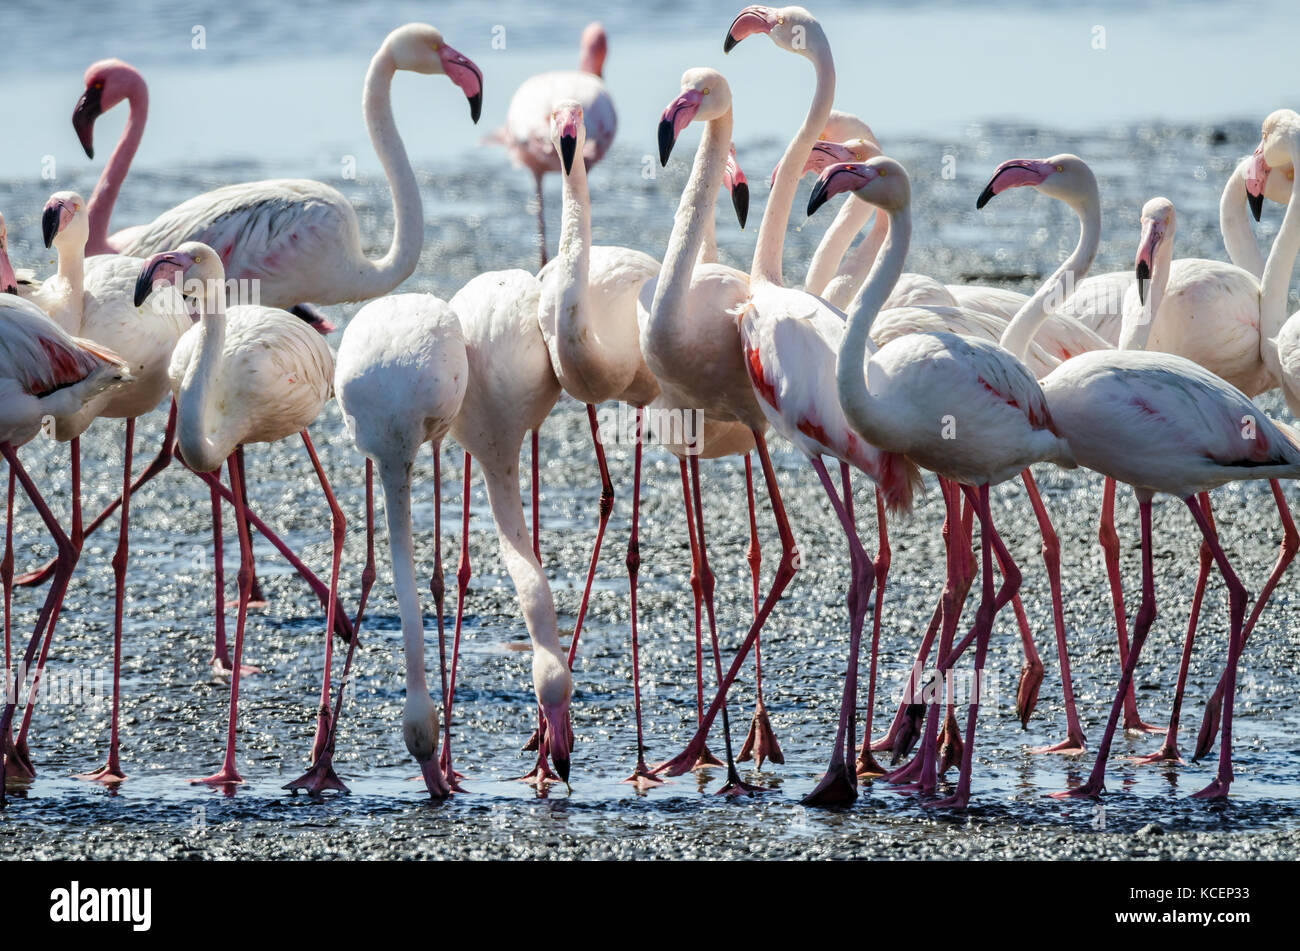 Flock of pink flamingos gathered at Namibia's Sandwich Harbour seaside and lagoon were wading to search for their Stock Photo